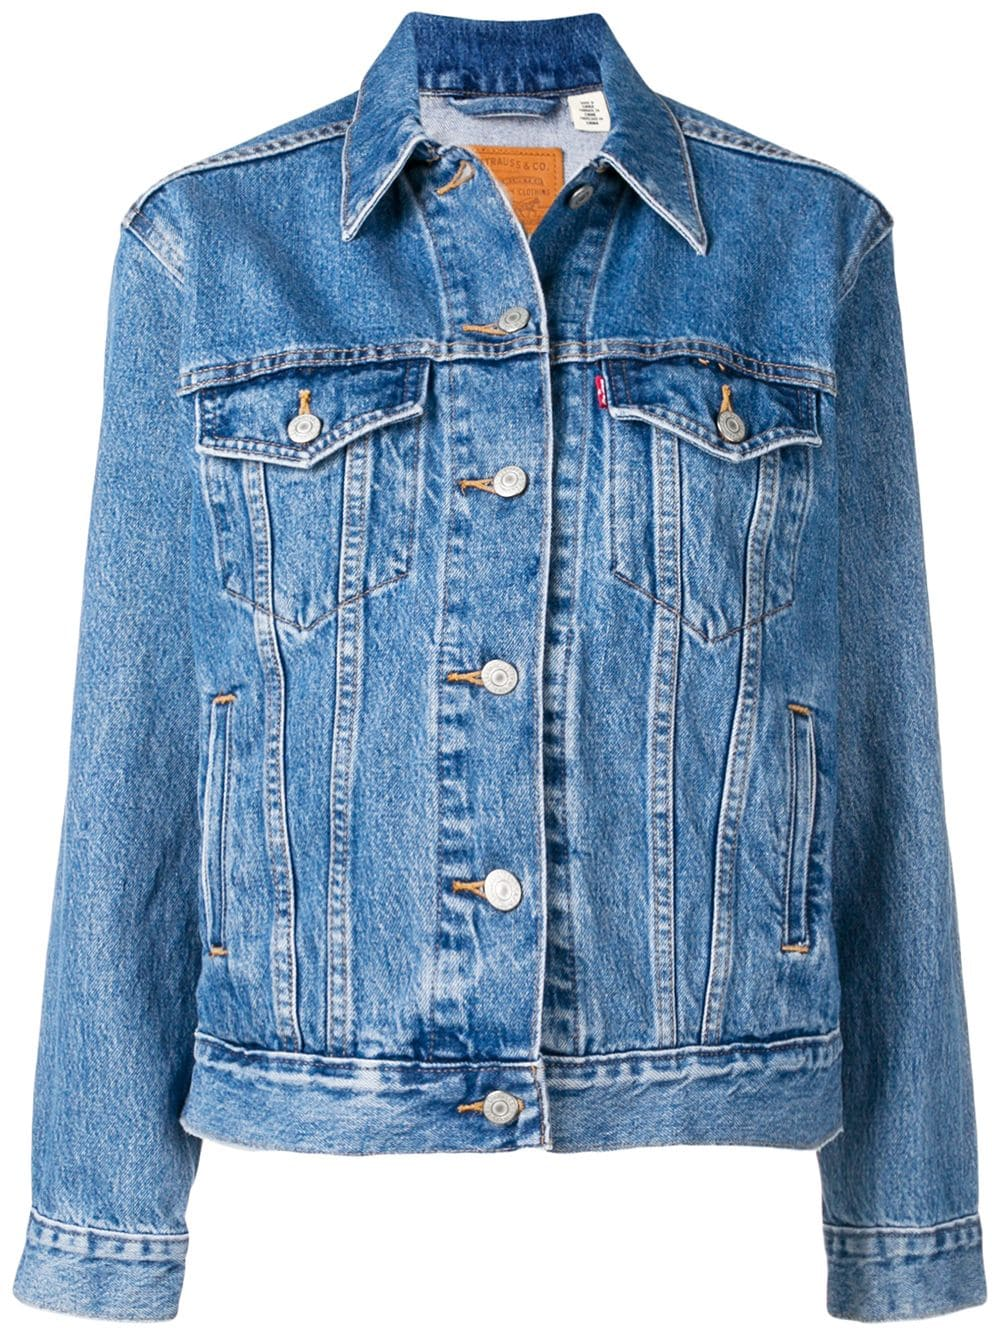 LEVI'S_DENIM_JACKET_JULIA_VON_BOEHM.jpg